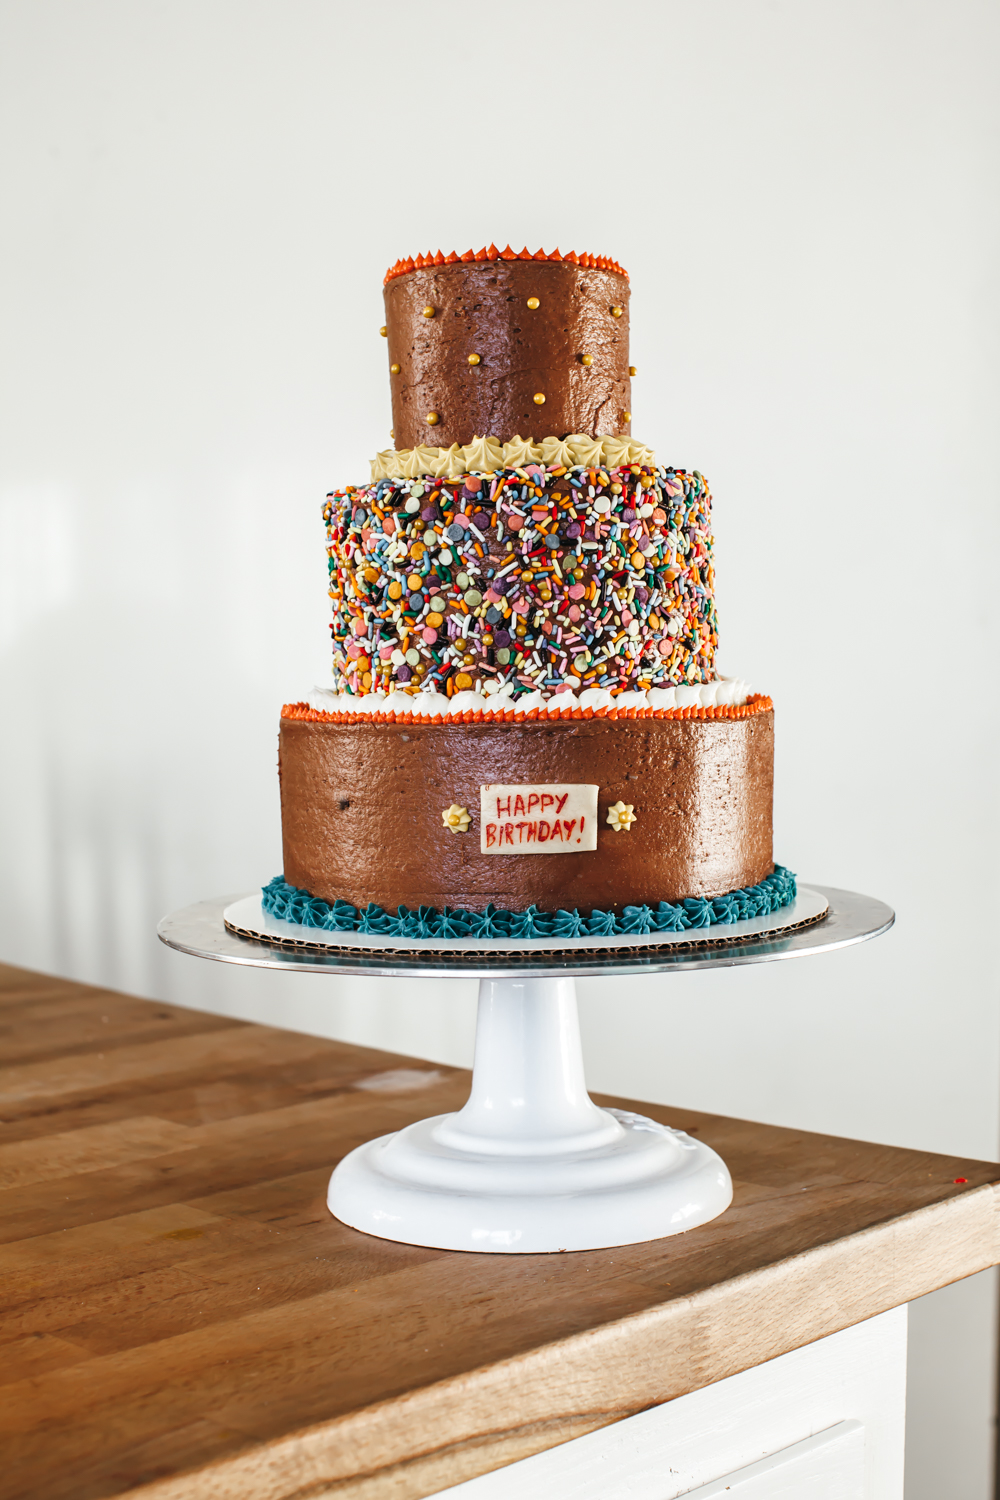 Eggboy S Birthday Cake Molly Yeh